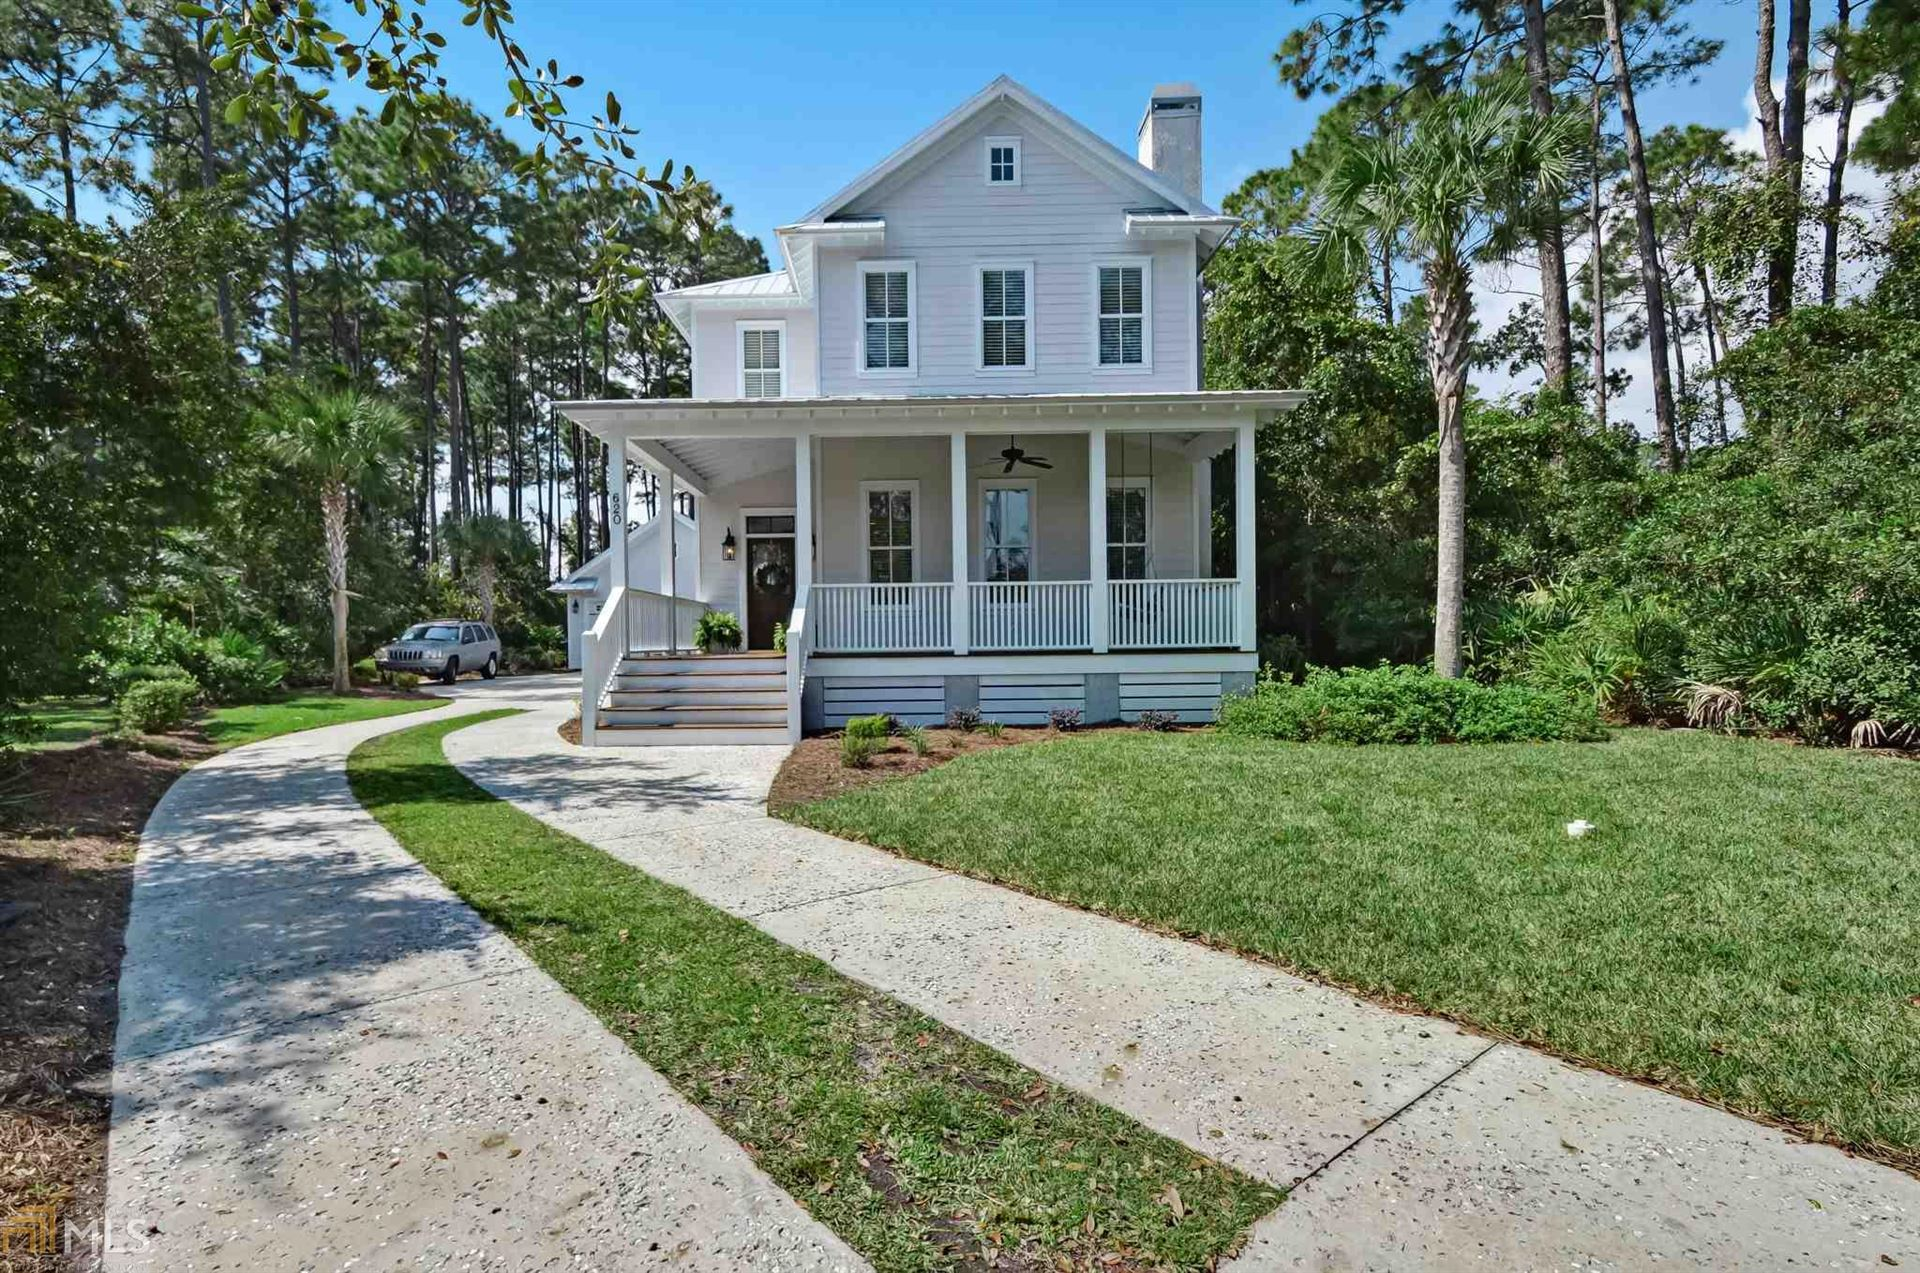 620 Charleston Way, Saint Marys, GA 31558 - MLS#: 8875546